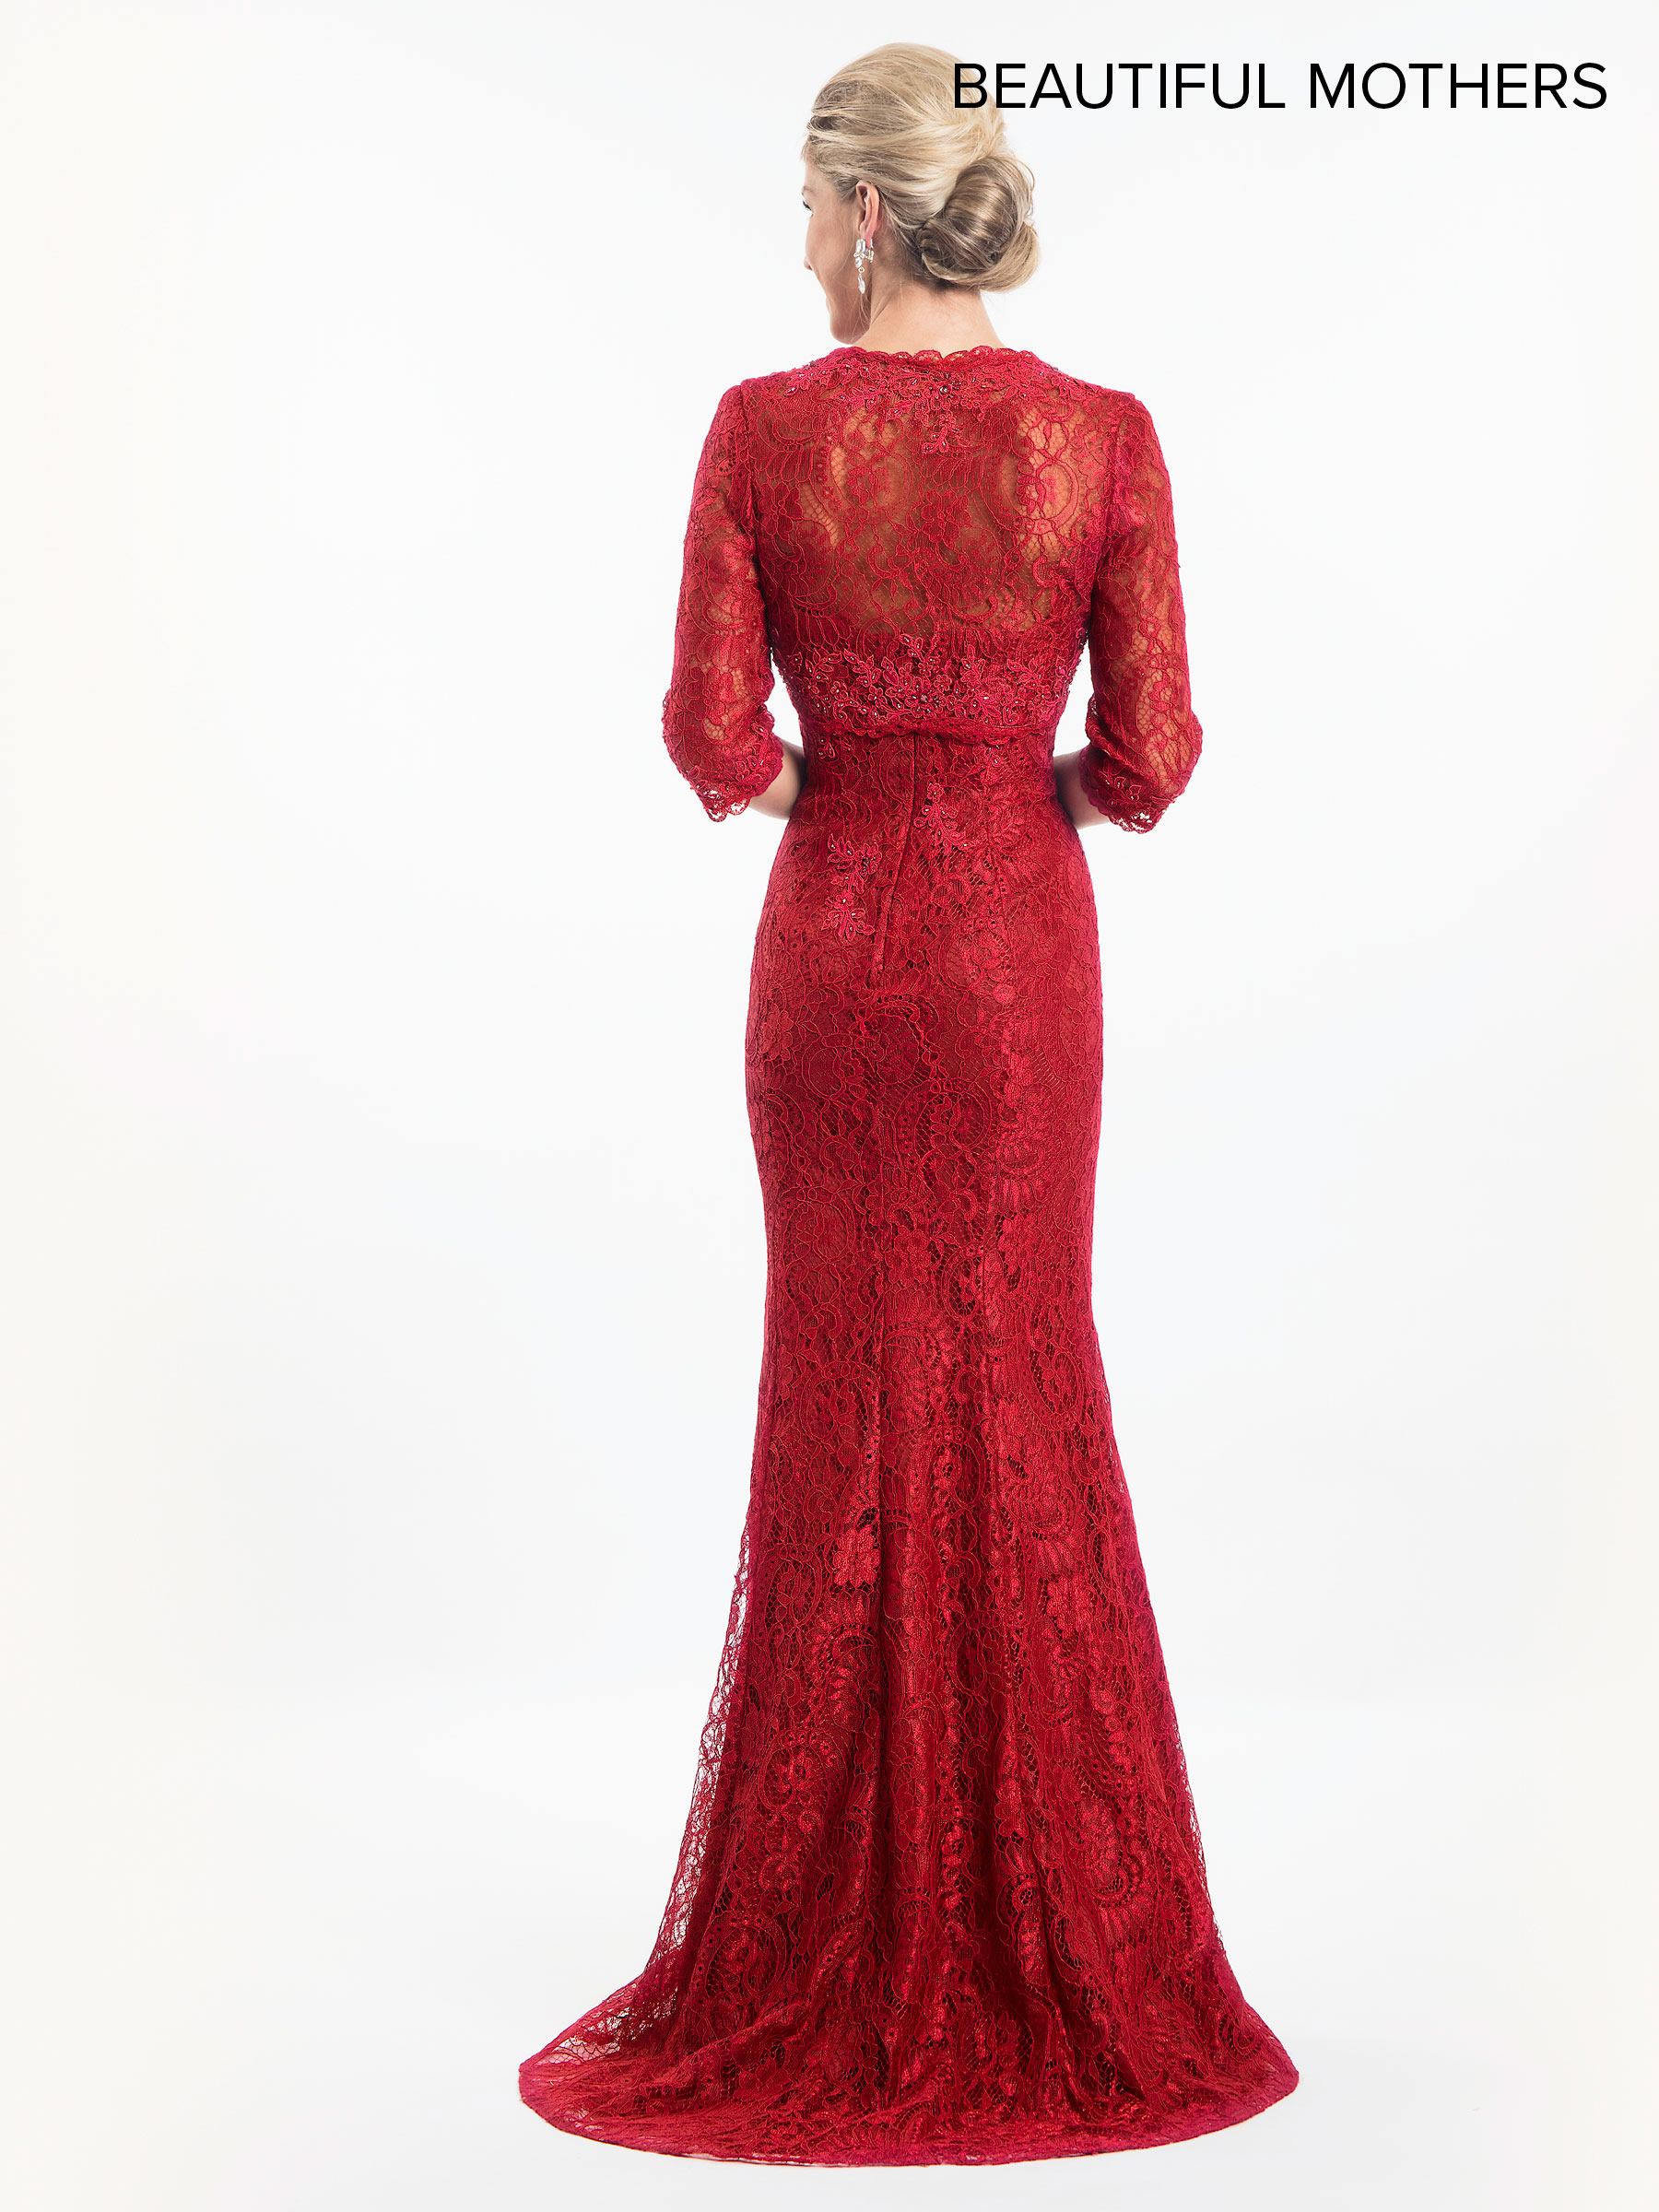 Mother Of The Bride Dresses | Beautiful Mothers | Style - MB8013